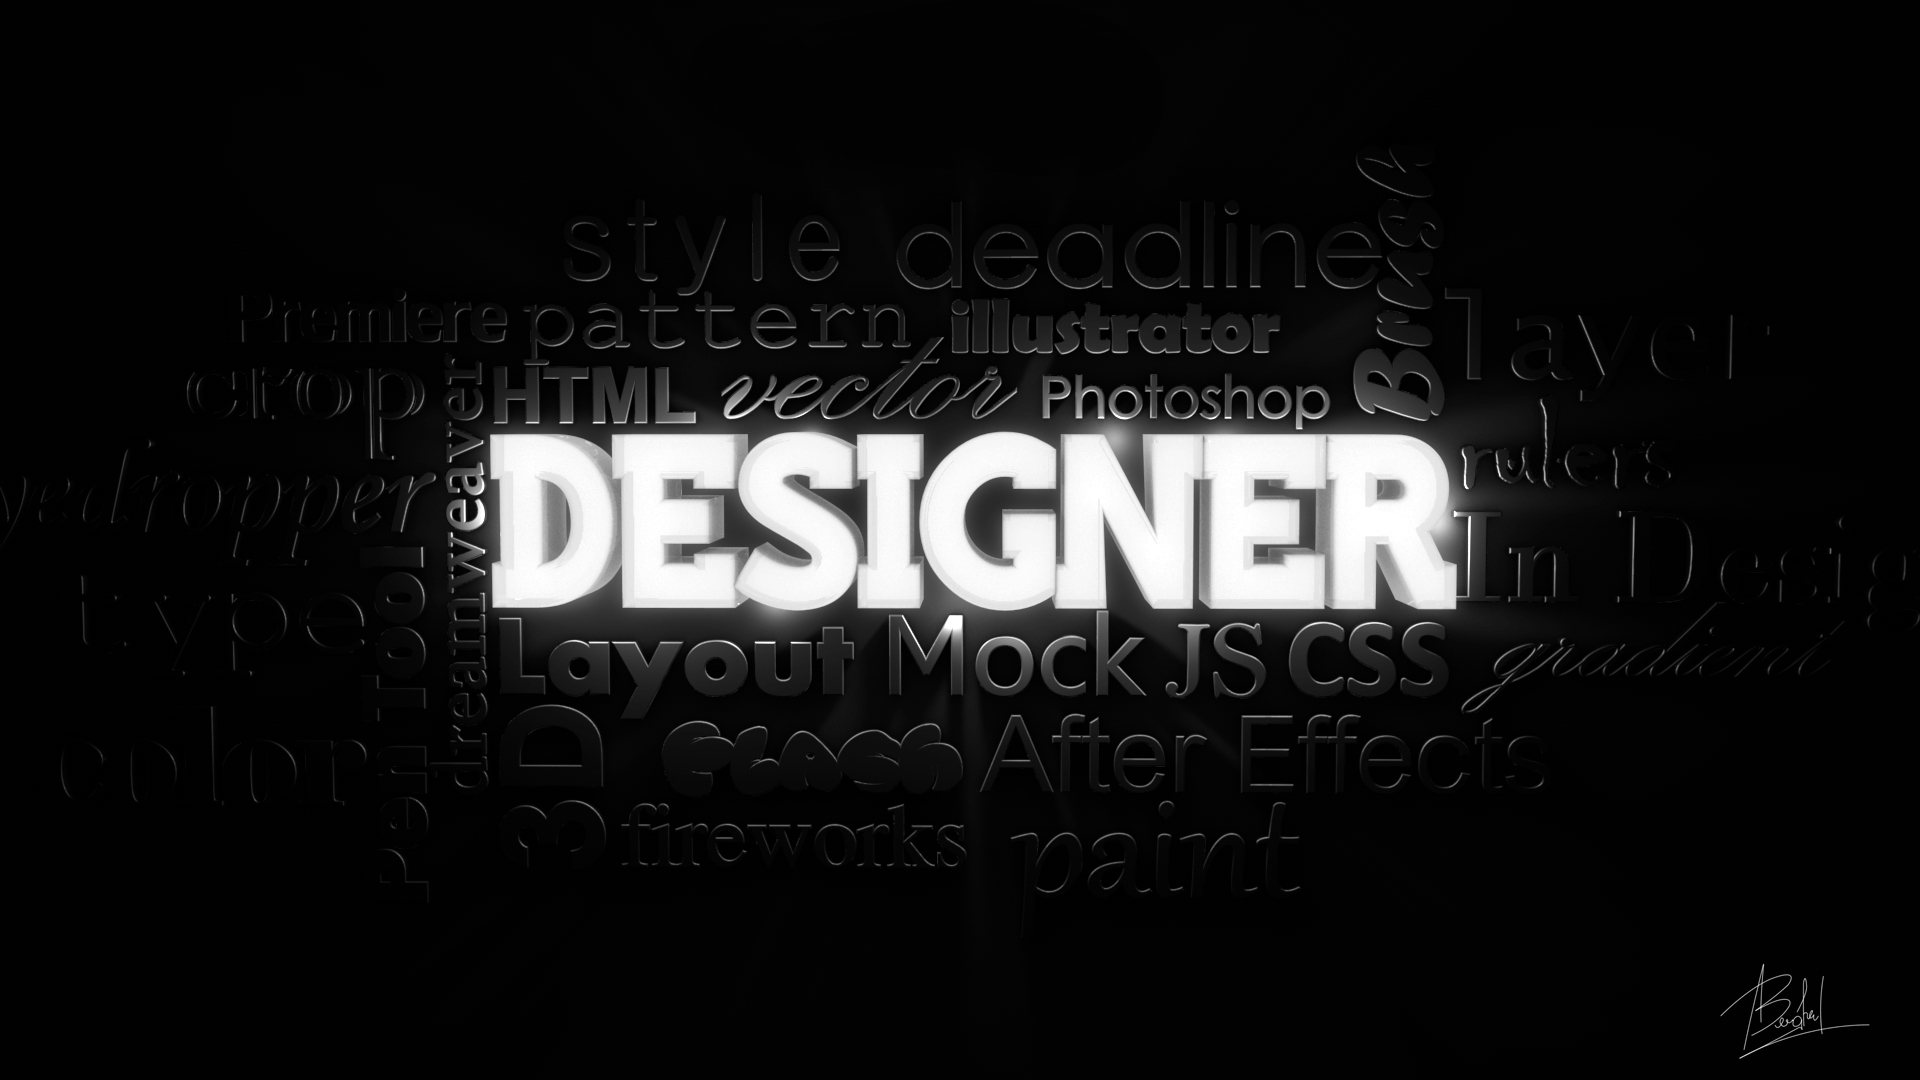 designer wallpaper art 1920x1080 1920x1080